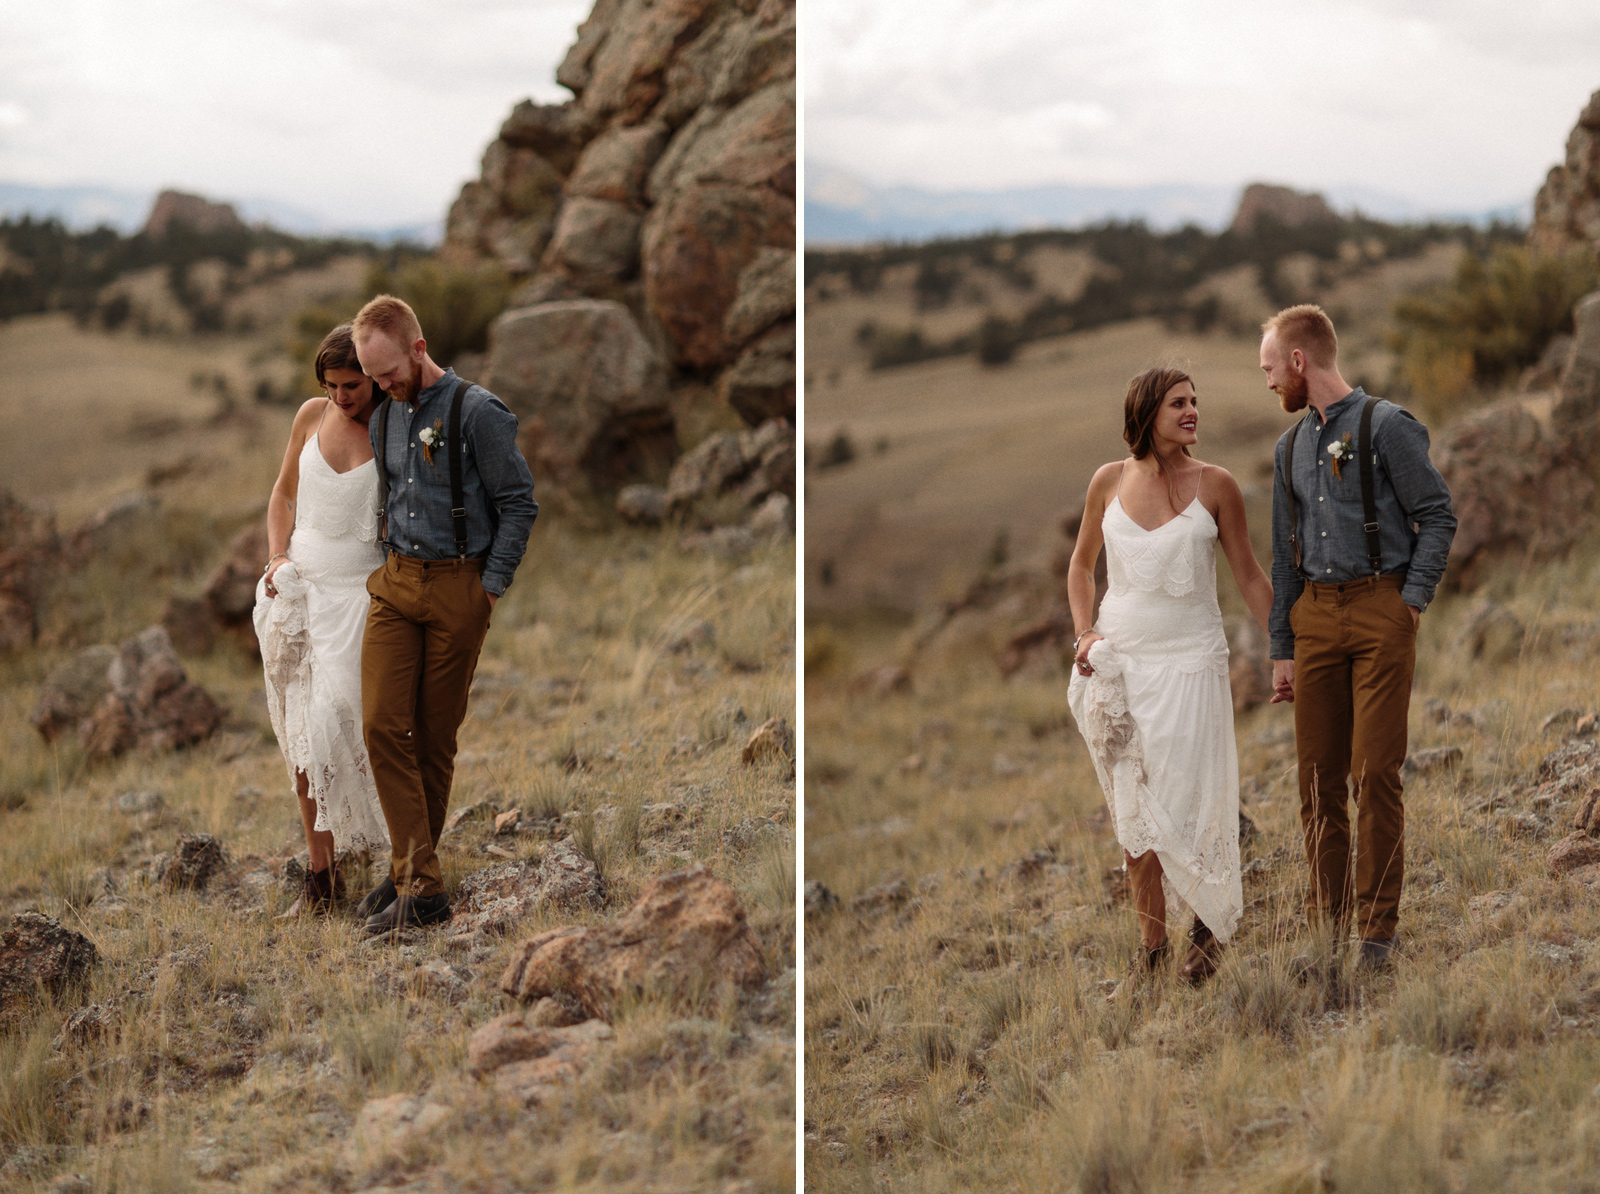 Jefferson-Colorado-Wedding-Photographer-Candice-and-TJ-66.jpg